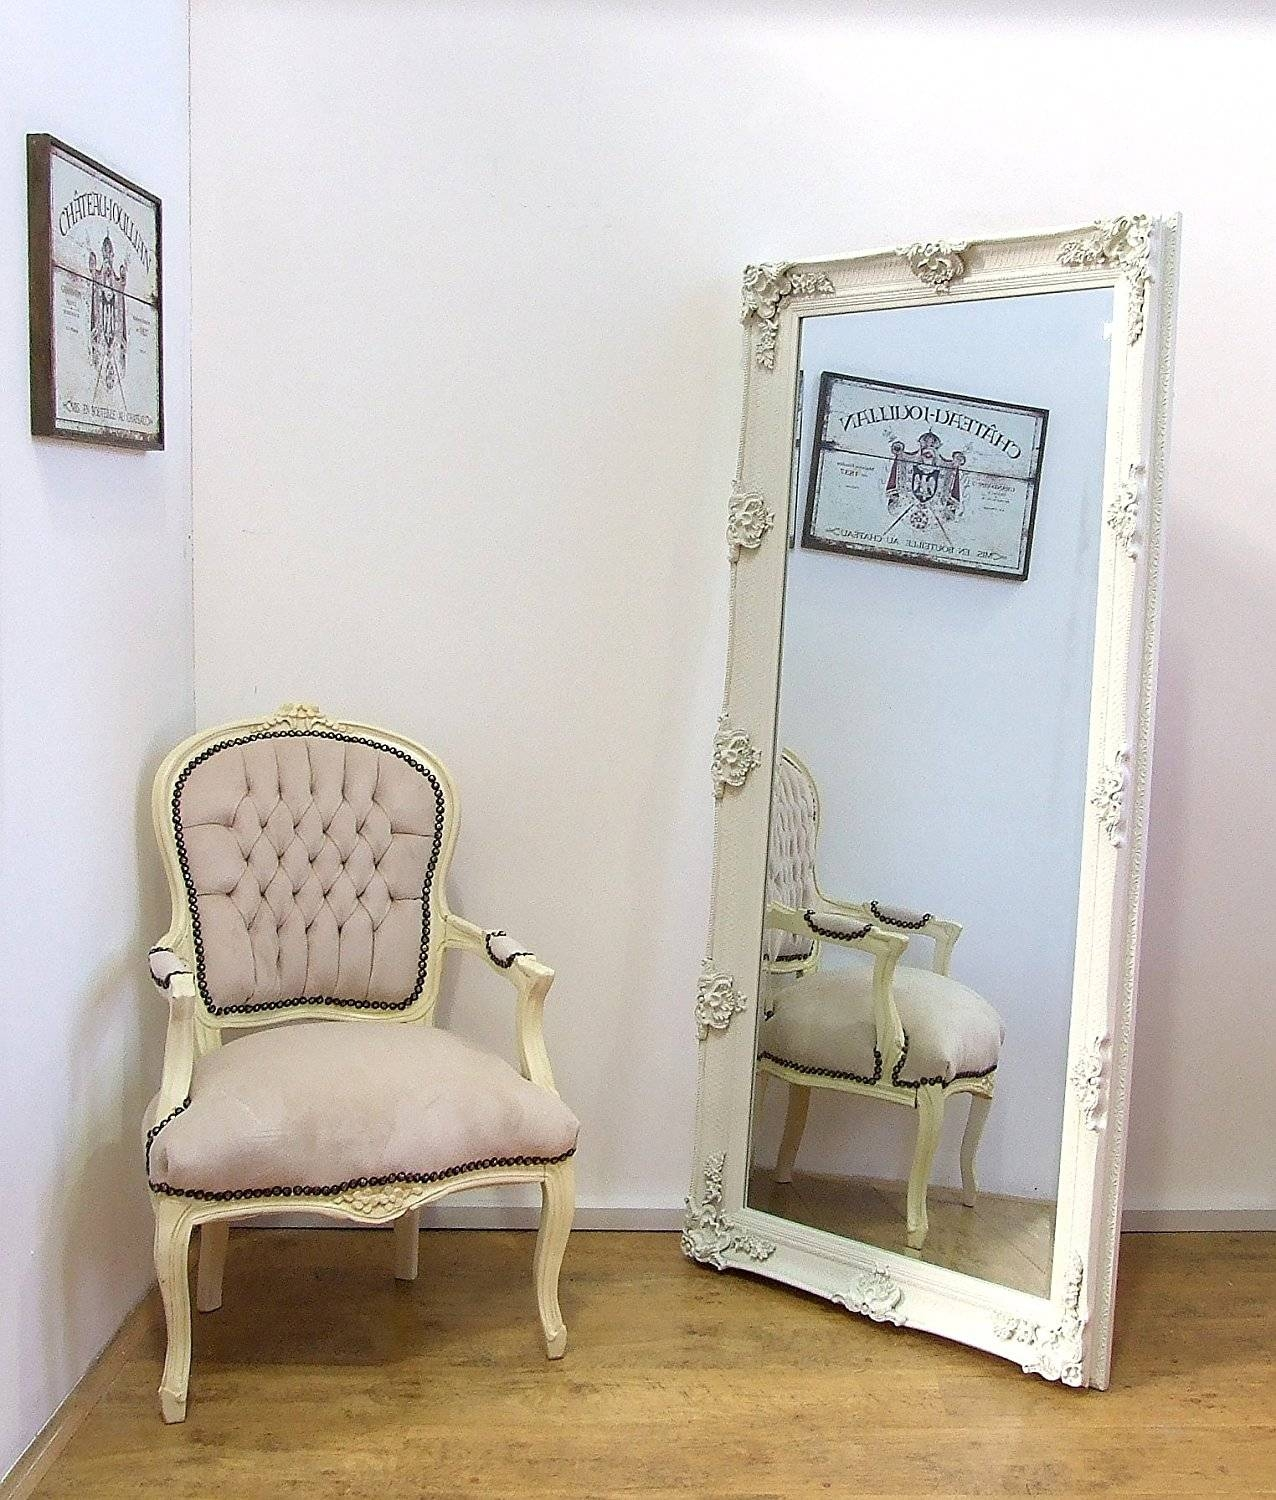 White Shabby Chic Wall Mirror | Home Design Ideas within White Shabby Chic Mirrors Sale (Image 25 of 25)